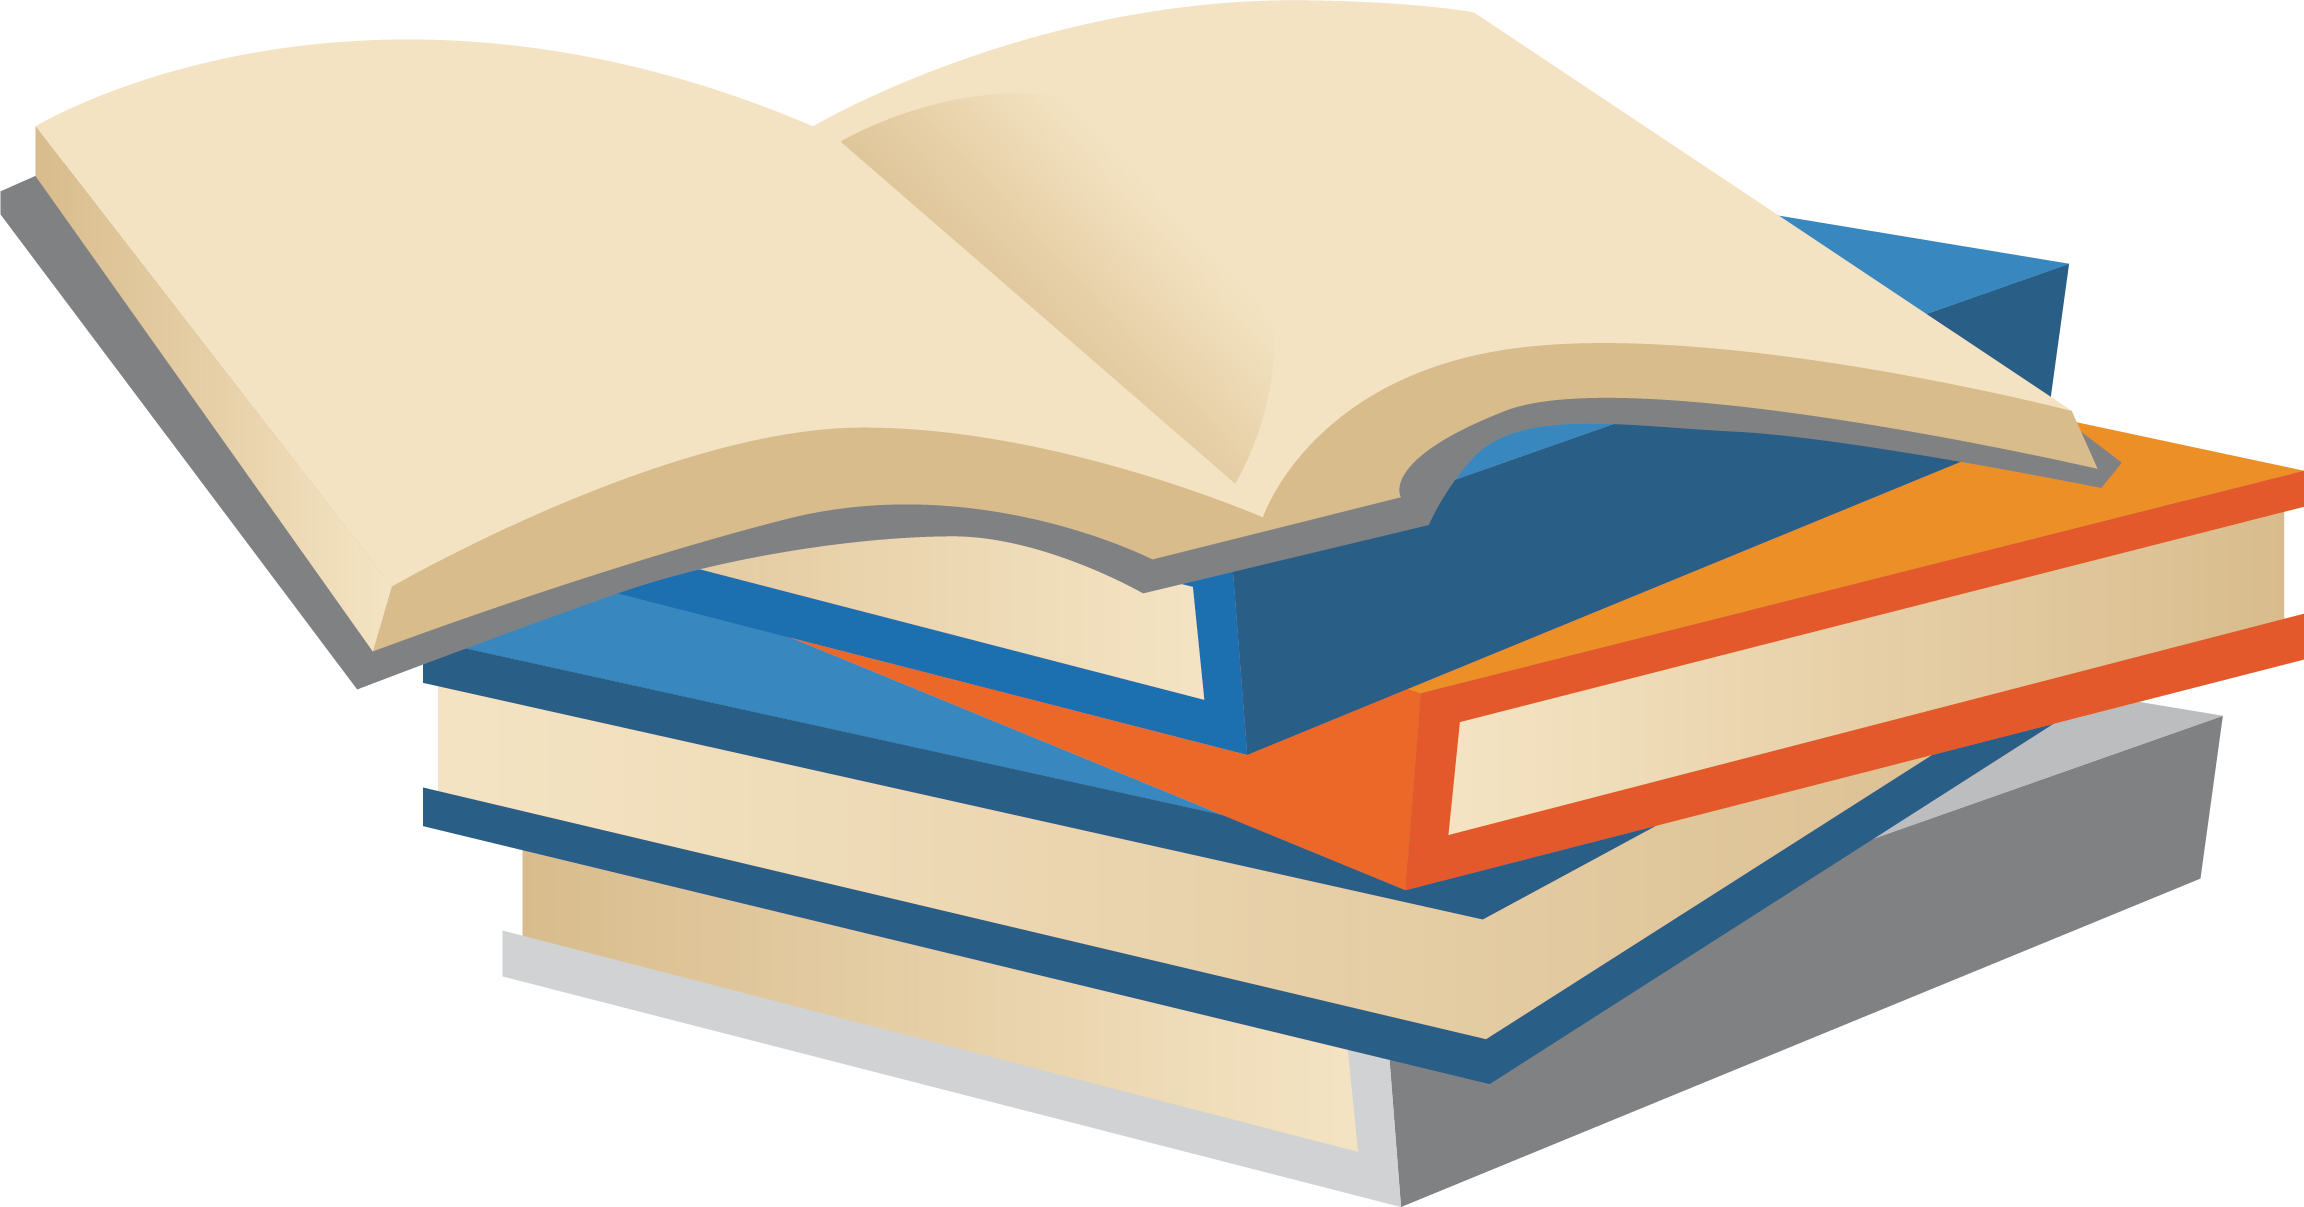 Book Vector Png At Getdrawings Com Free For Personal Use